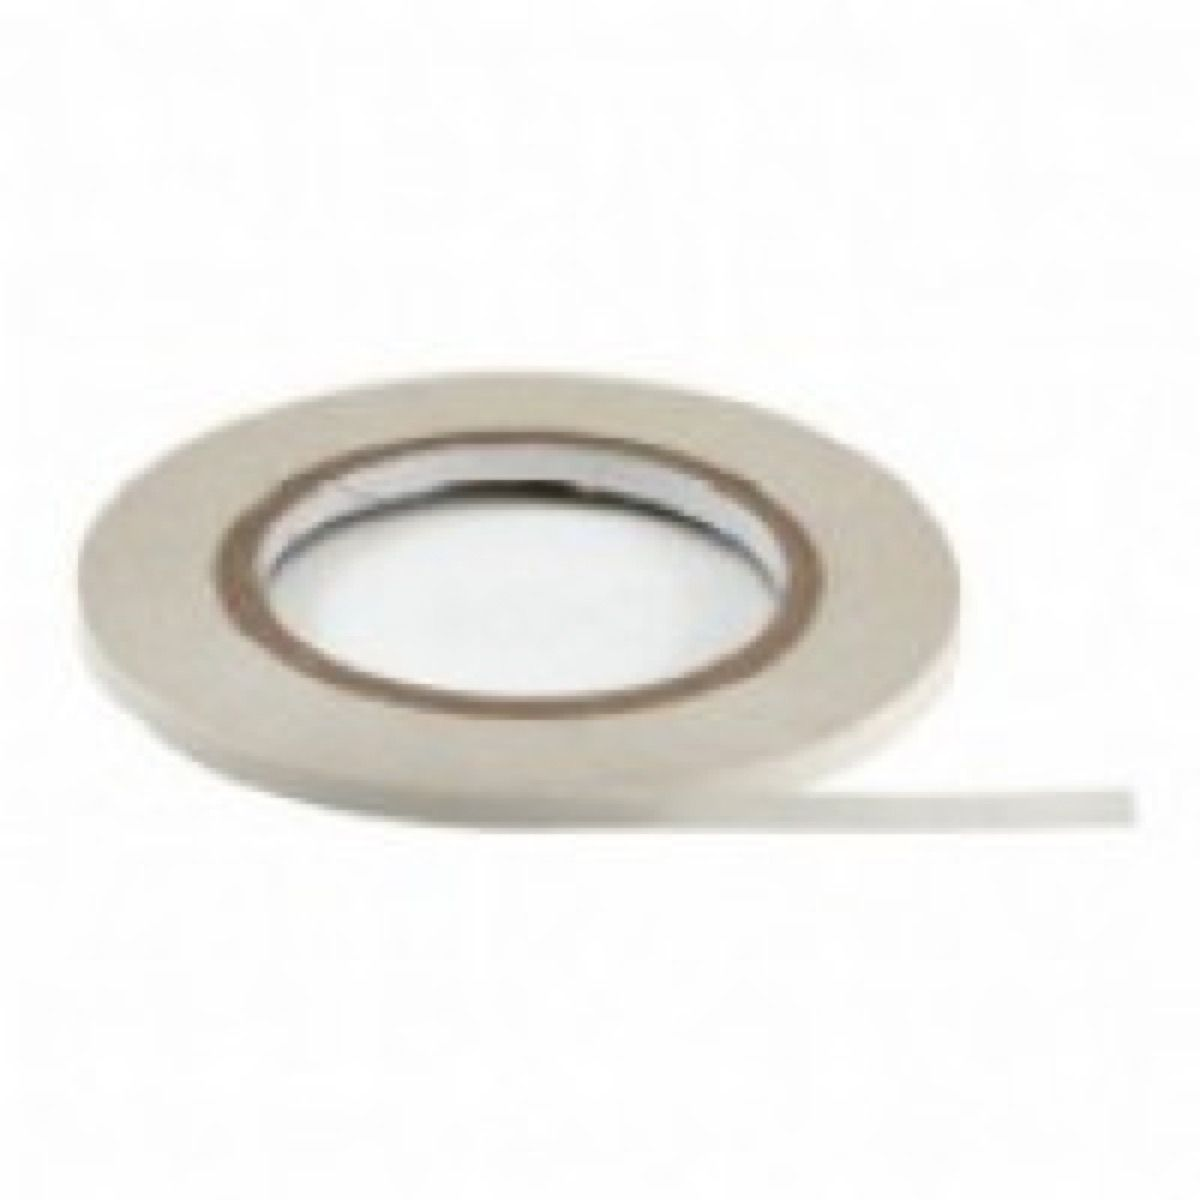 Remnant - 25m Roll Of Double Sided Sticky Tape - 6mm Wide - Dusty